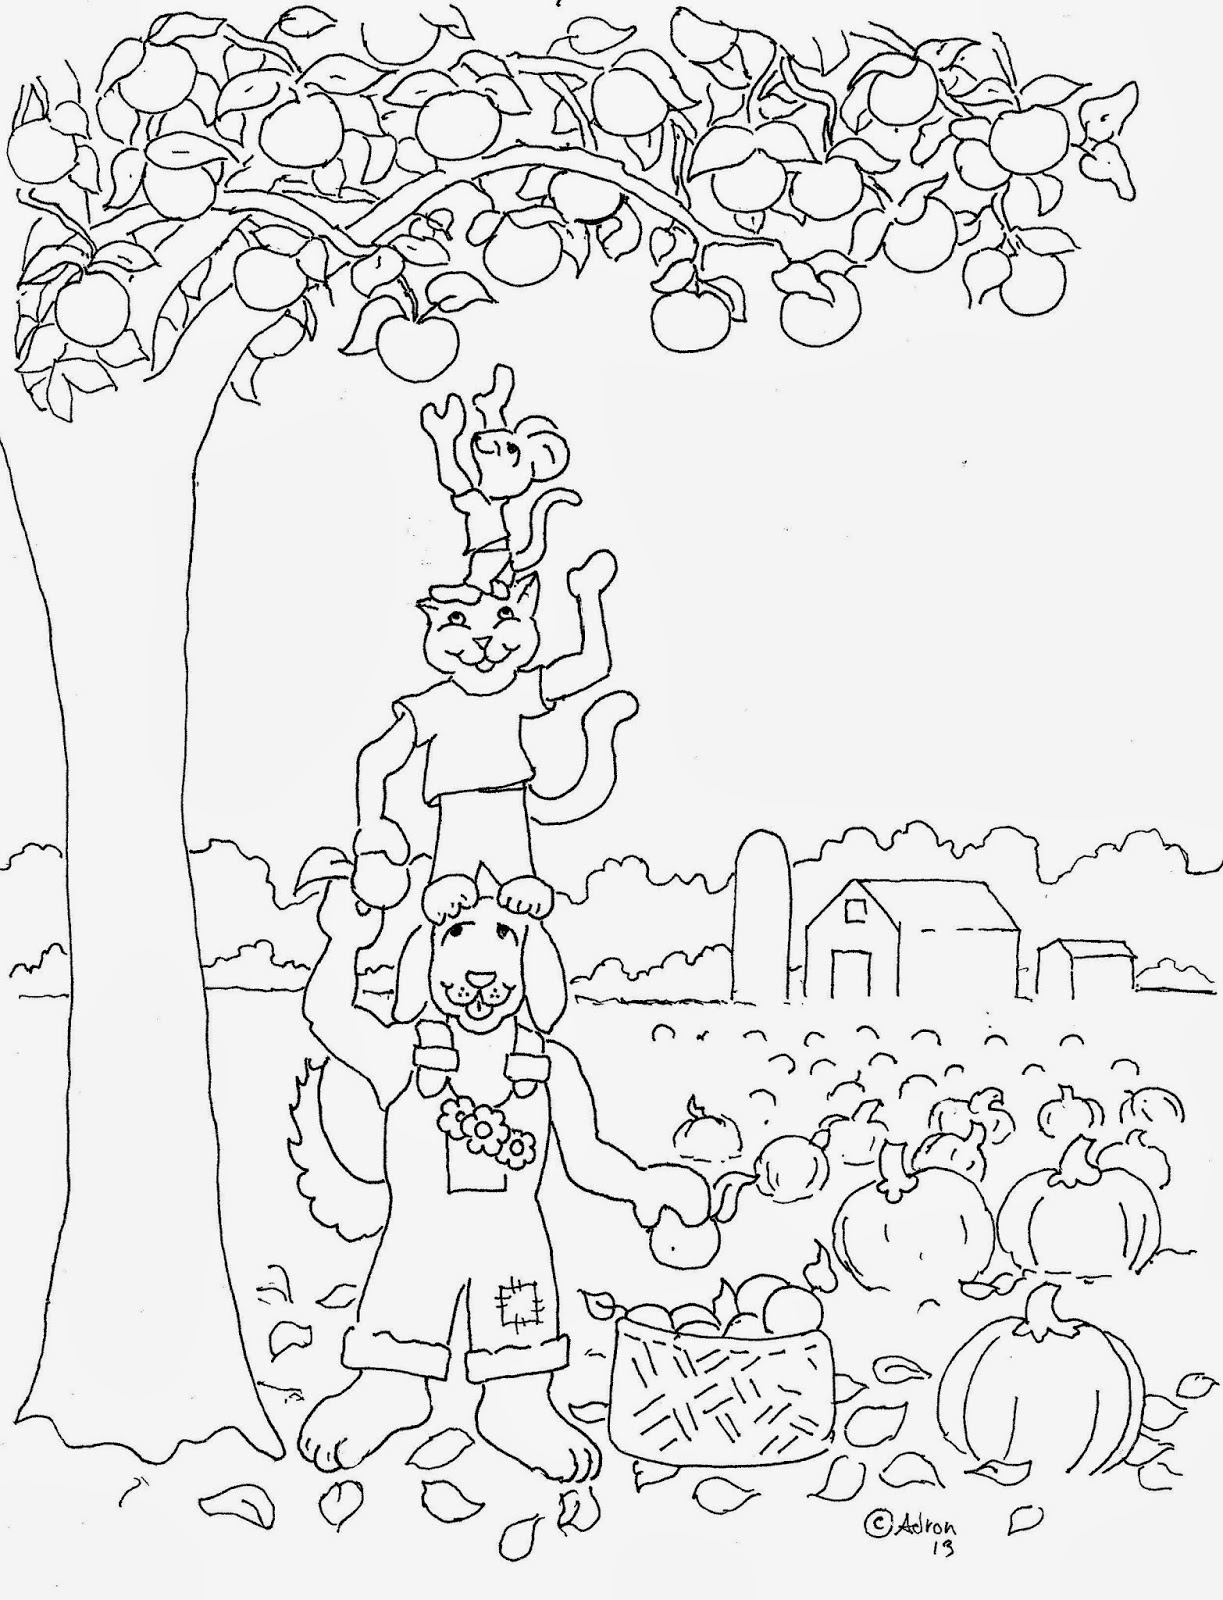 harvest colouring sheets harvest coloring pages best coloring pages for kids colouring harvest sheets